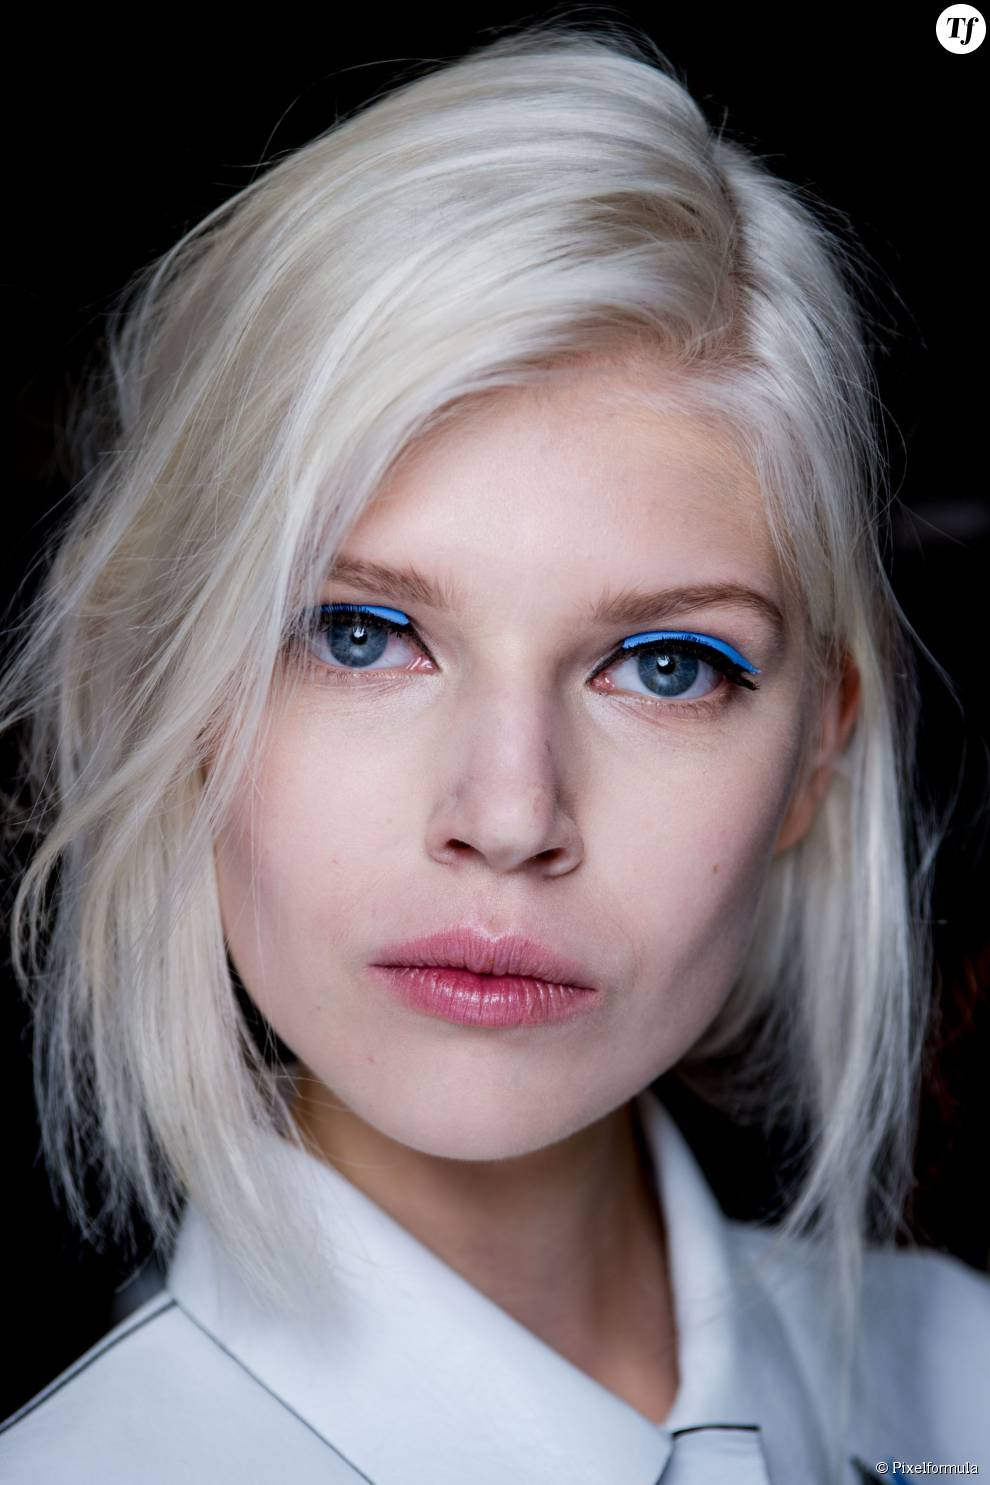 cheveux blancs fendi backstage printemps t 2015 - Colorer Cheveux Blancs